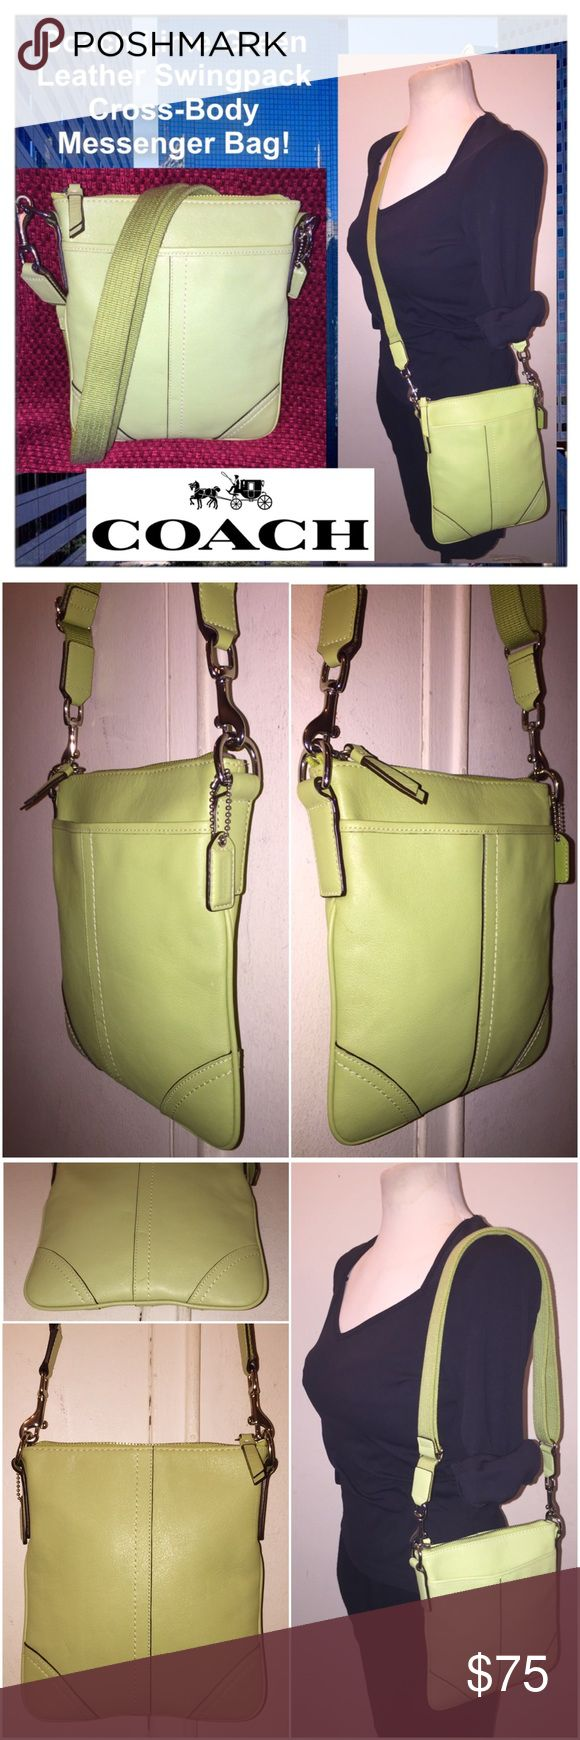 """Coach Lime Green Leather Swingpack Messenger Bag! Coach Lime Green Leather Swingpack Cross-Body Messenger Bag! Features: 100% authentic, lime green color, genuine leather exterior, silvertone hardware, single adjustable crossbody strap, zip top closure, interior fabric lining & front slip pocket. Coach hang tag. Note! Some Coach swingpack styles do not have the creed.   Retail: $168. Measures approx. 8 1/2"""" high x 7 1/2"""" across x 1"""" wide. Strap adjustable from 14"""" - 24"""" (body) clearance…"""